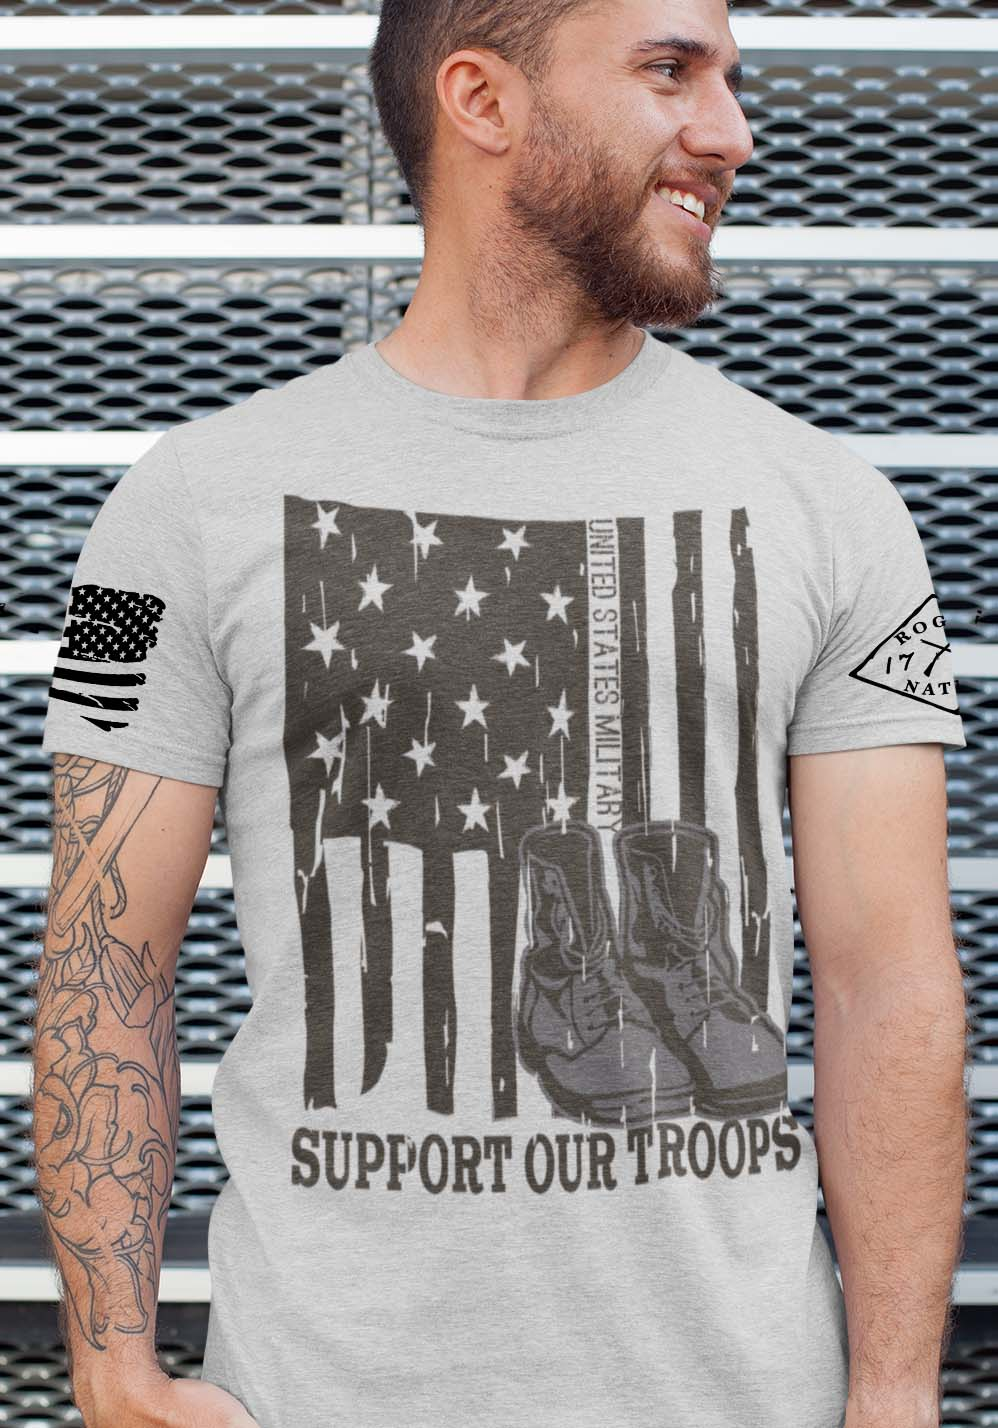 Support Our Troops on a Mens Light Heather Grey T-shirt. Tall Only